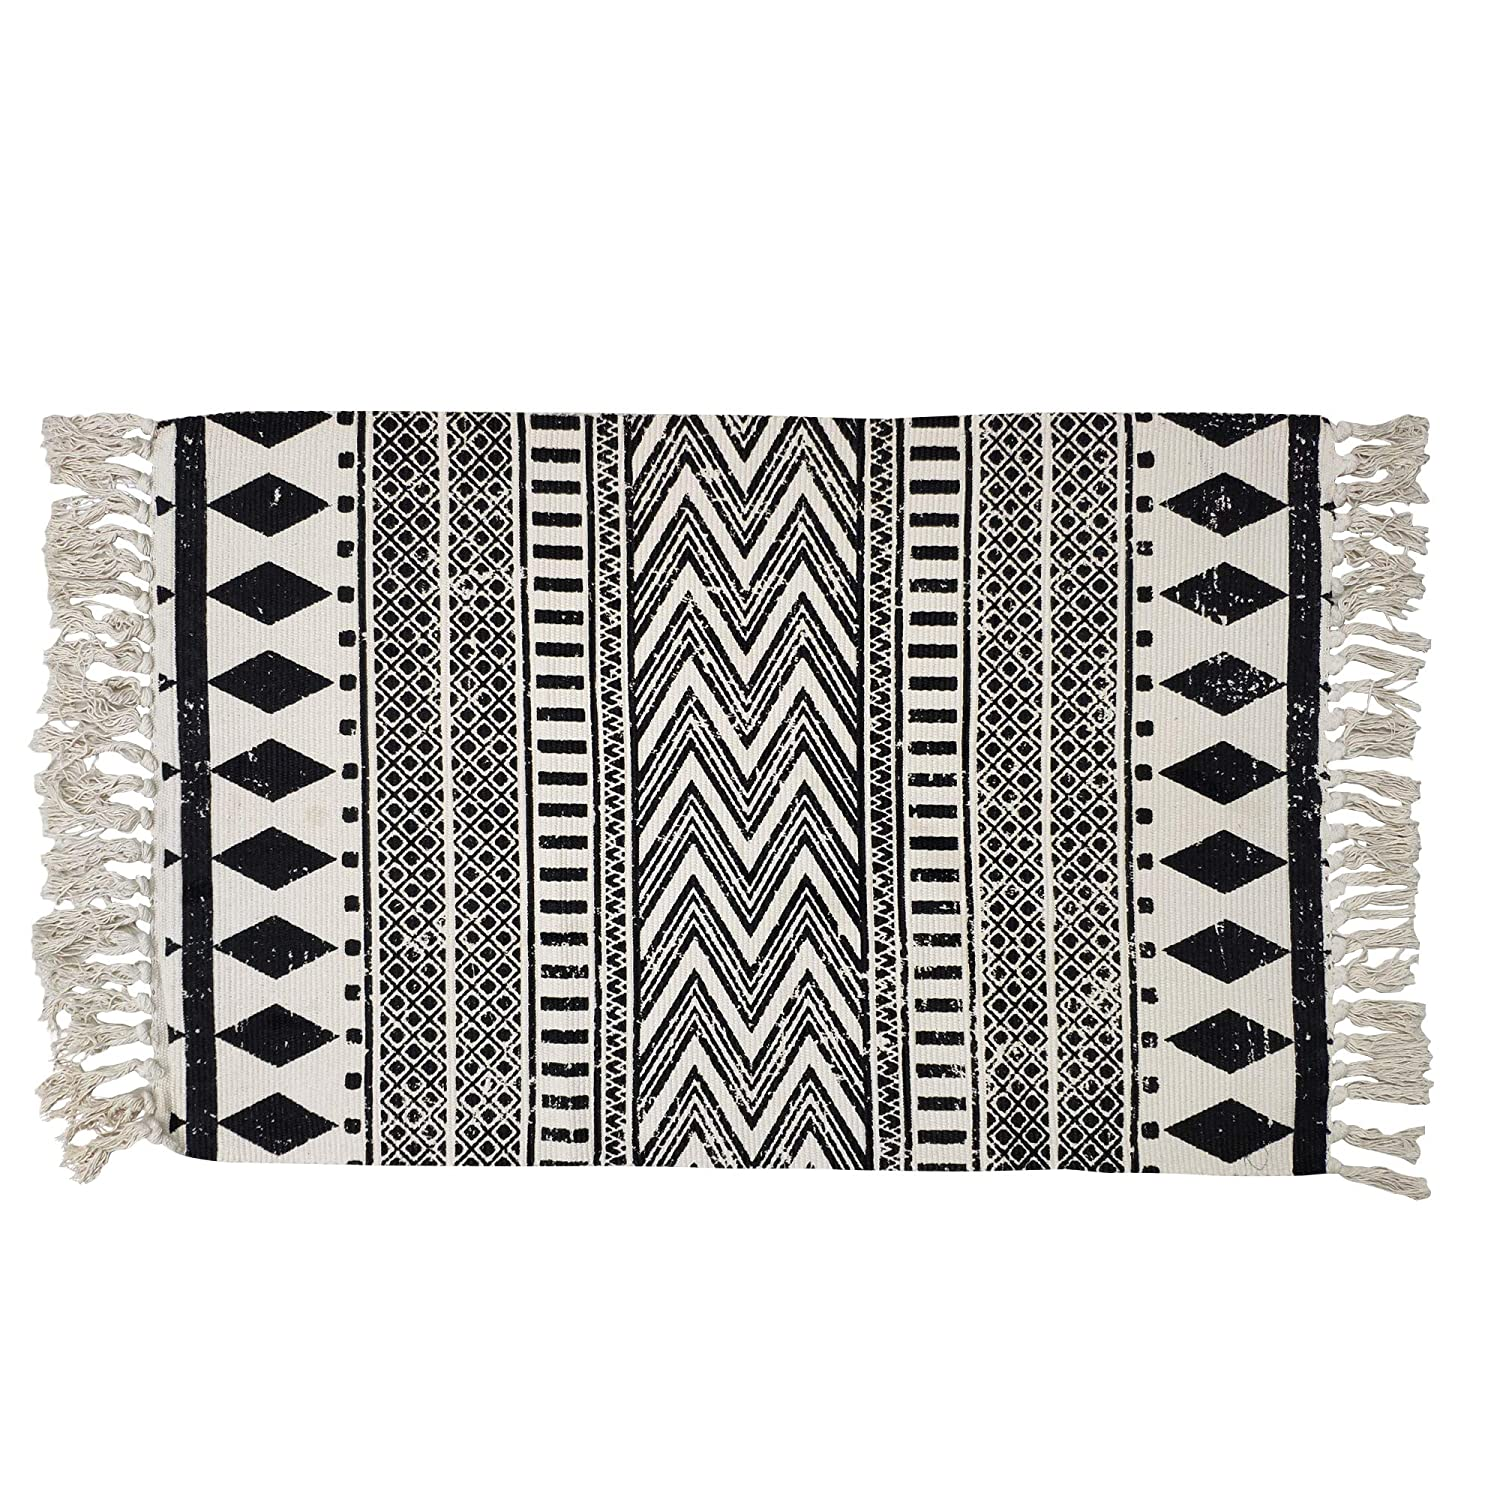 USTIDE Cotton Braided Black&Cream Bohemian Rag Rug Washable Decorative Doormat Hand Woven Tassel Rug, 2'×3'